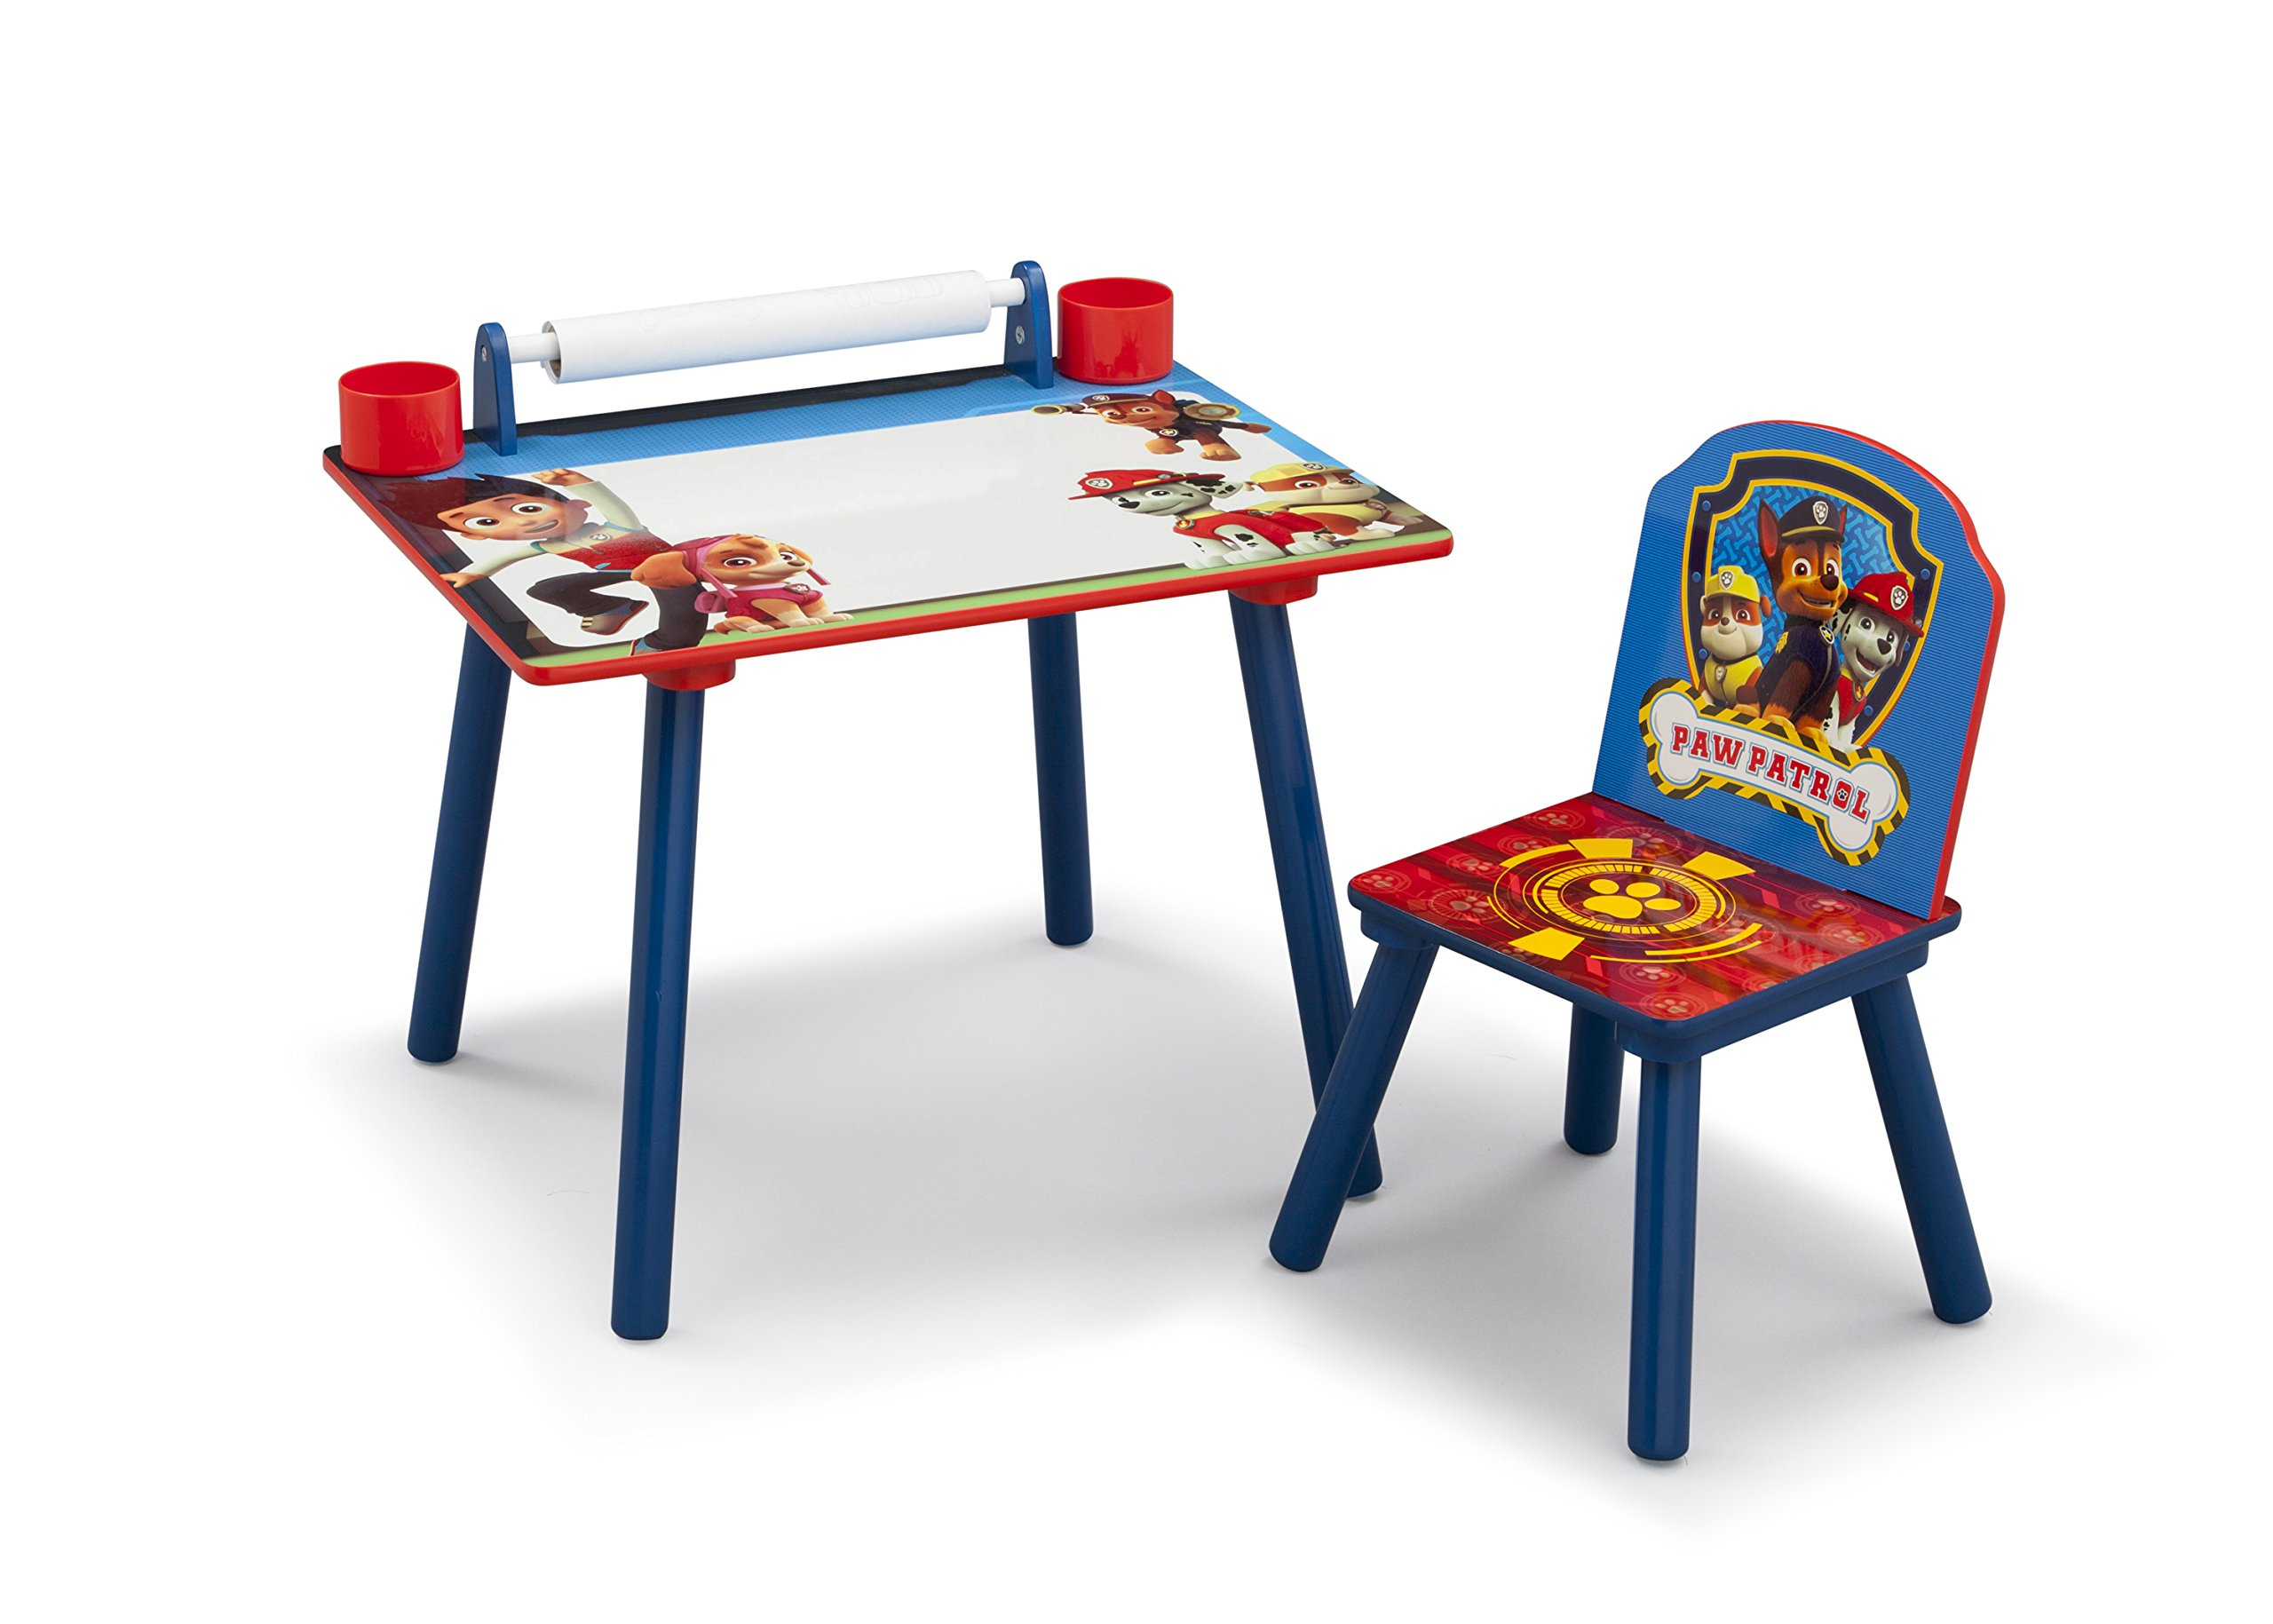 PAW Patrol Art Desk with Dry-Erase Tabletop and Color Book Paper Roll, Nick Jr.